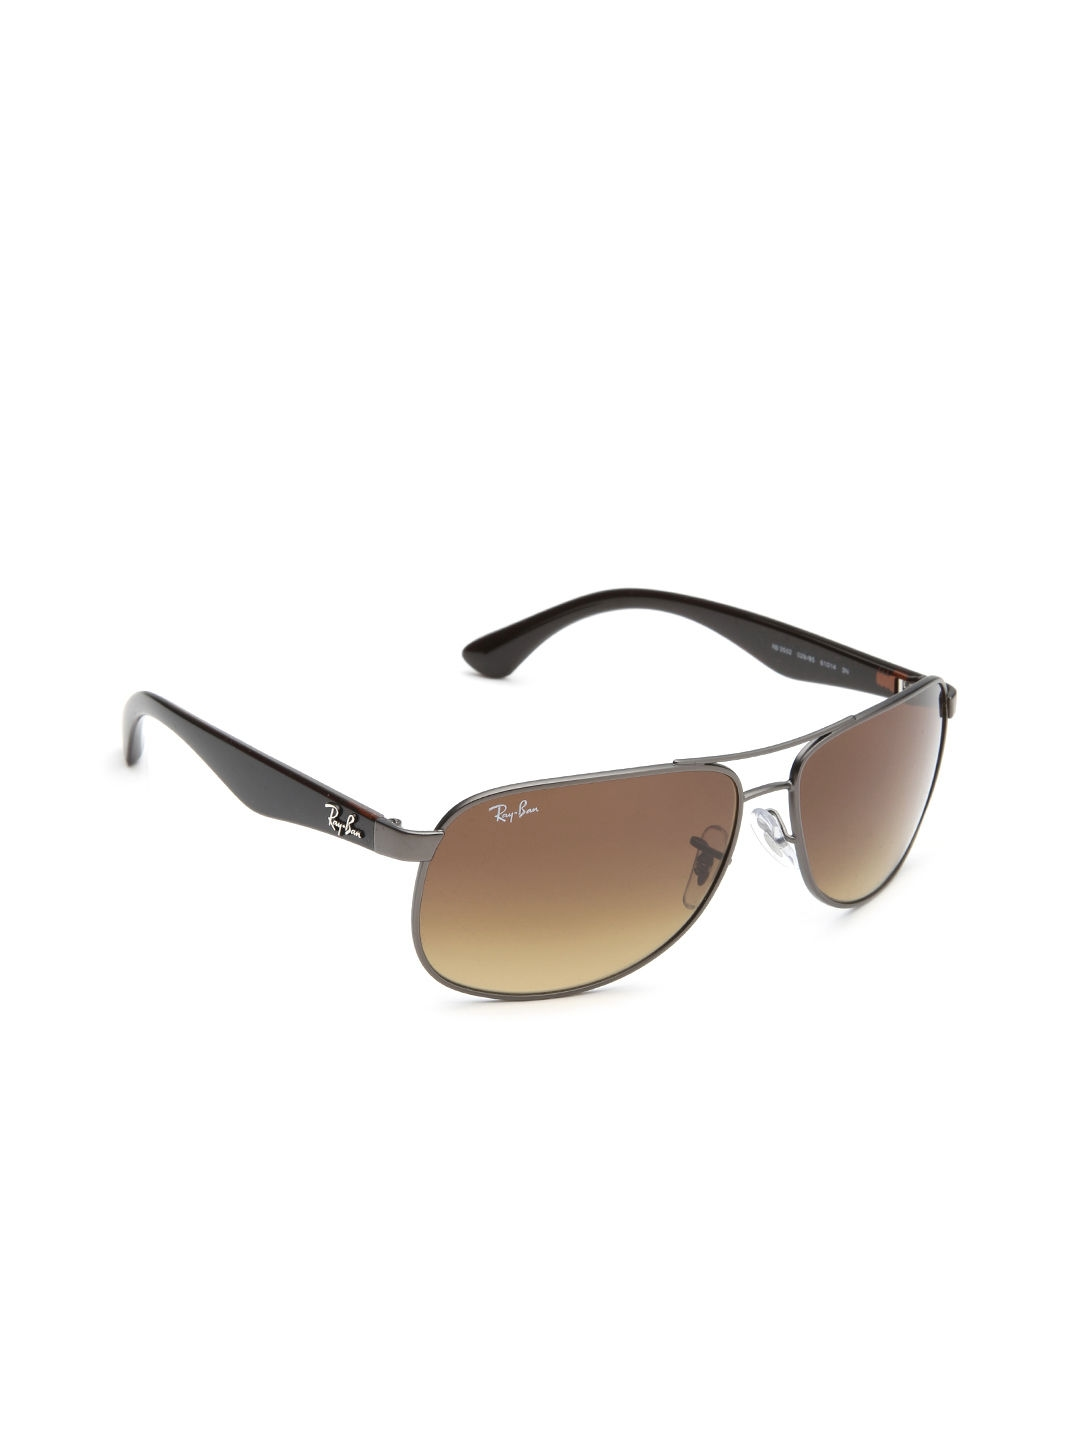 741d993553 Buy Ray Ban Unisex Oval Sunglasses 0RB3502 - Sunglasses for Unisex 756409